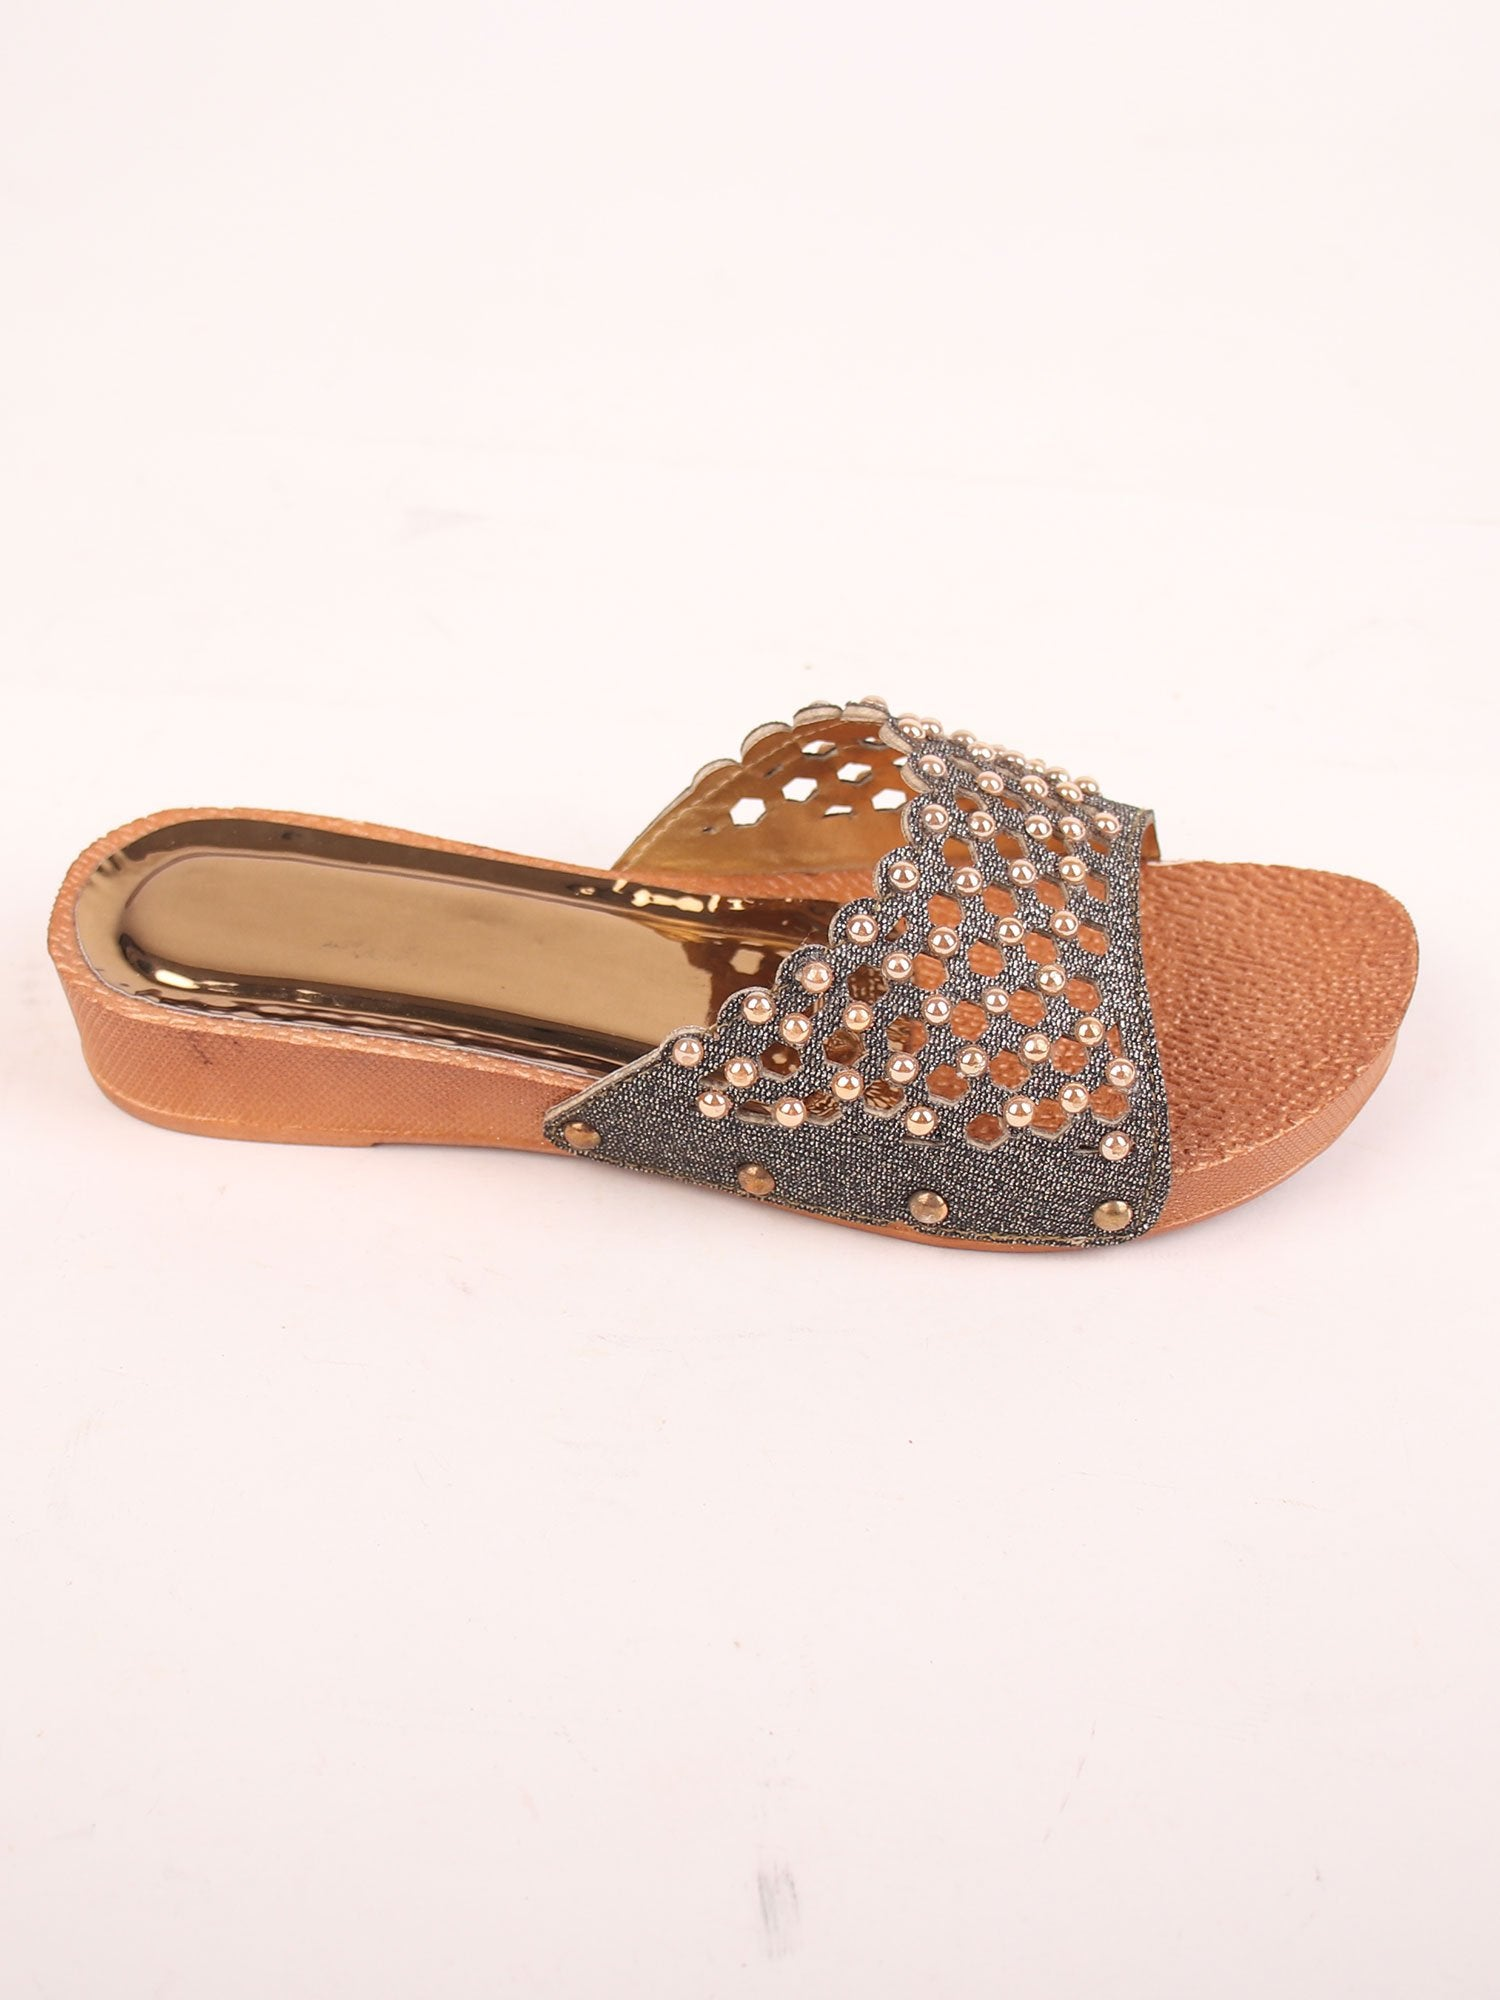 PEARL STUDDED PLATFORM SANDALS IN BLACK METAL HUE